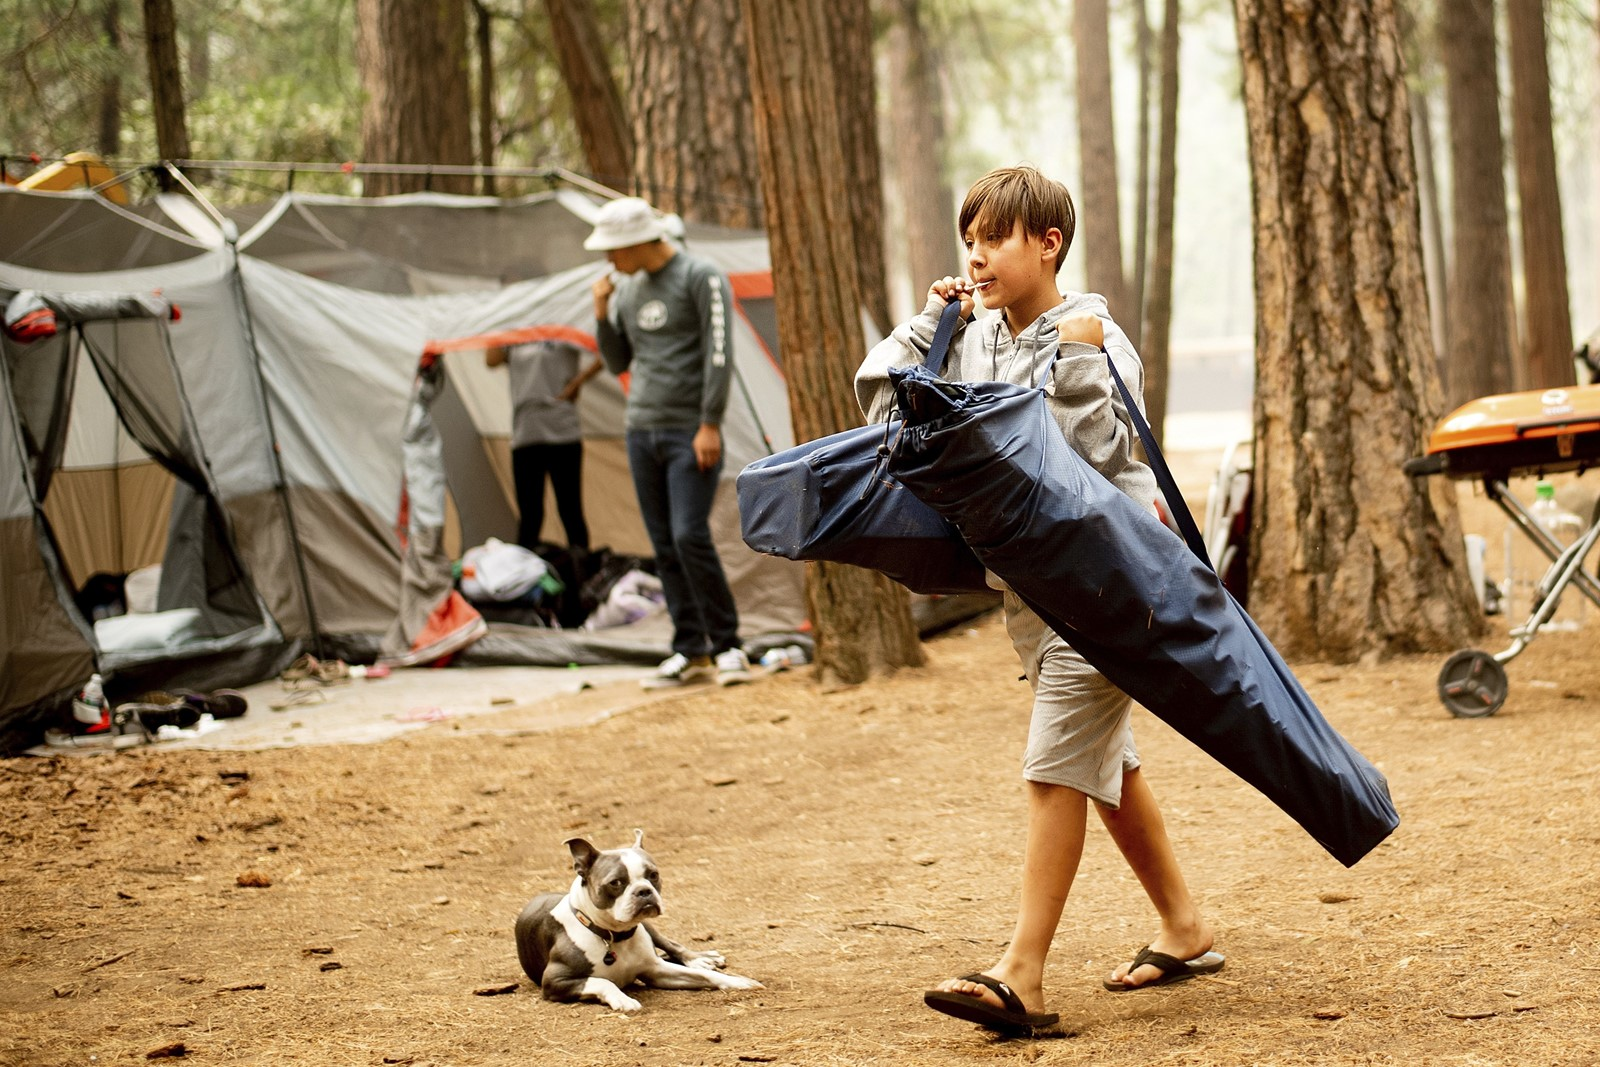 River Martinez breaks camp at Yosemite park on Wednesday. The deadly Ferguson fire continued to rage near the park, and visitors had to leave by noon. — Photograph: Noah Berger/Associated Press.